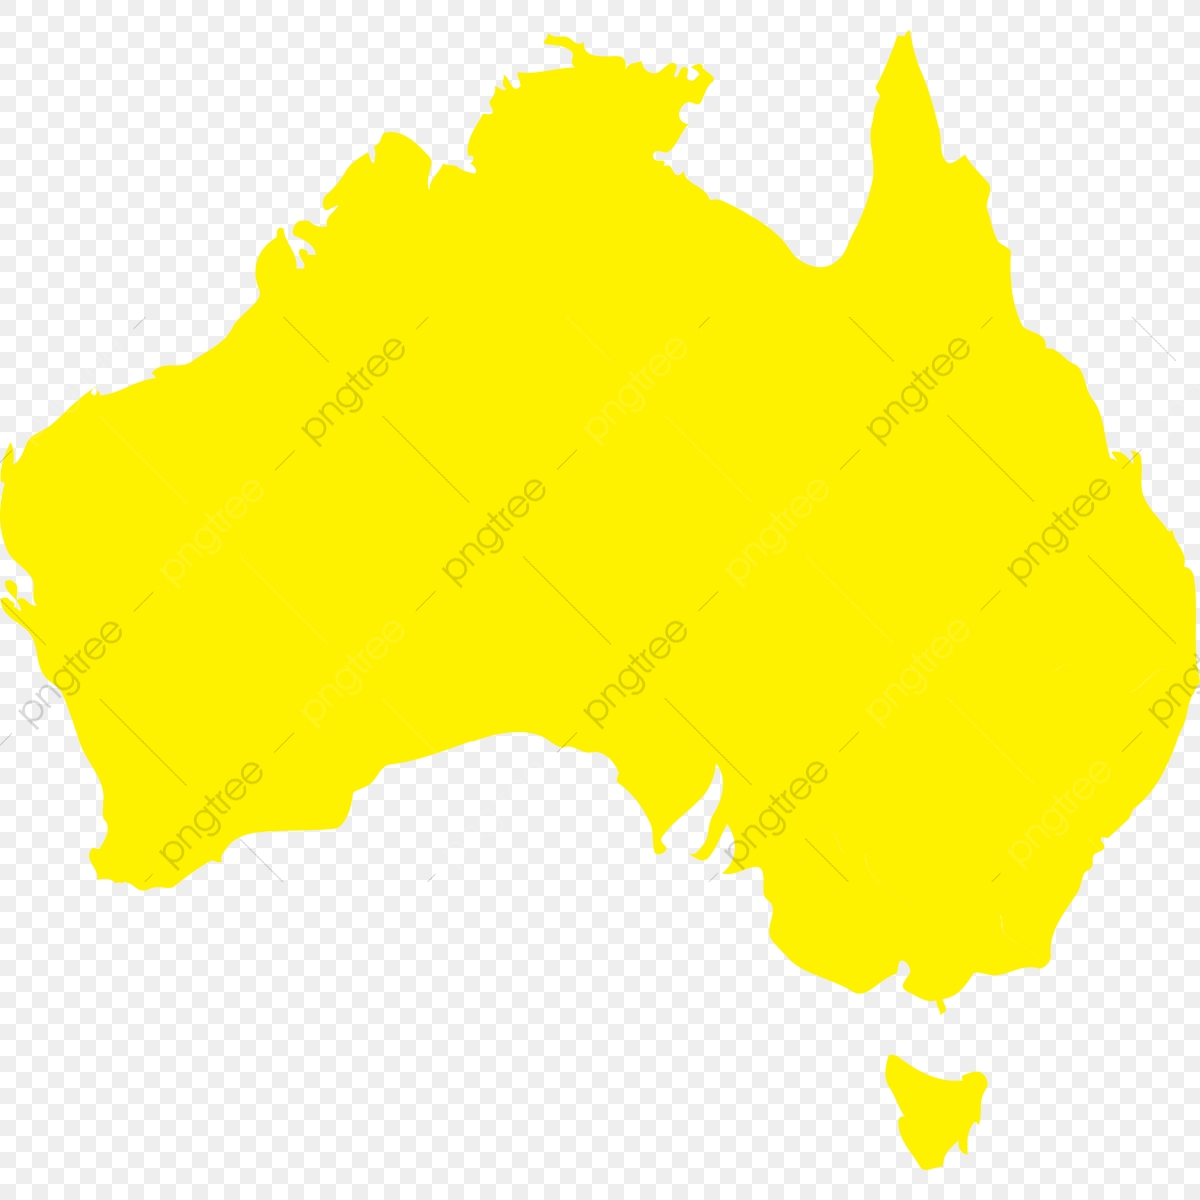 Australia Map Transparent.Australia Vector Map Australia Map Png And Vector With Transparent